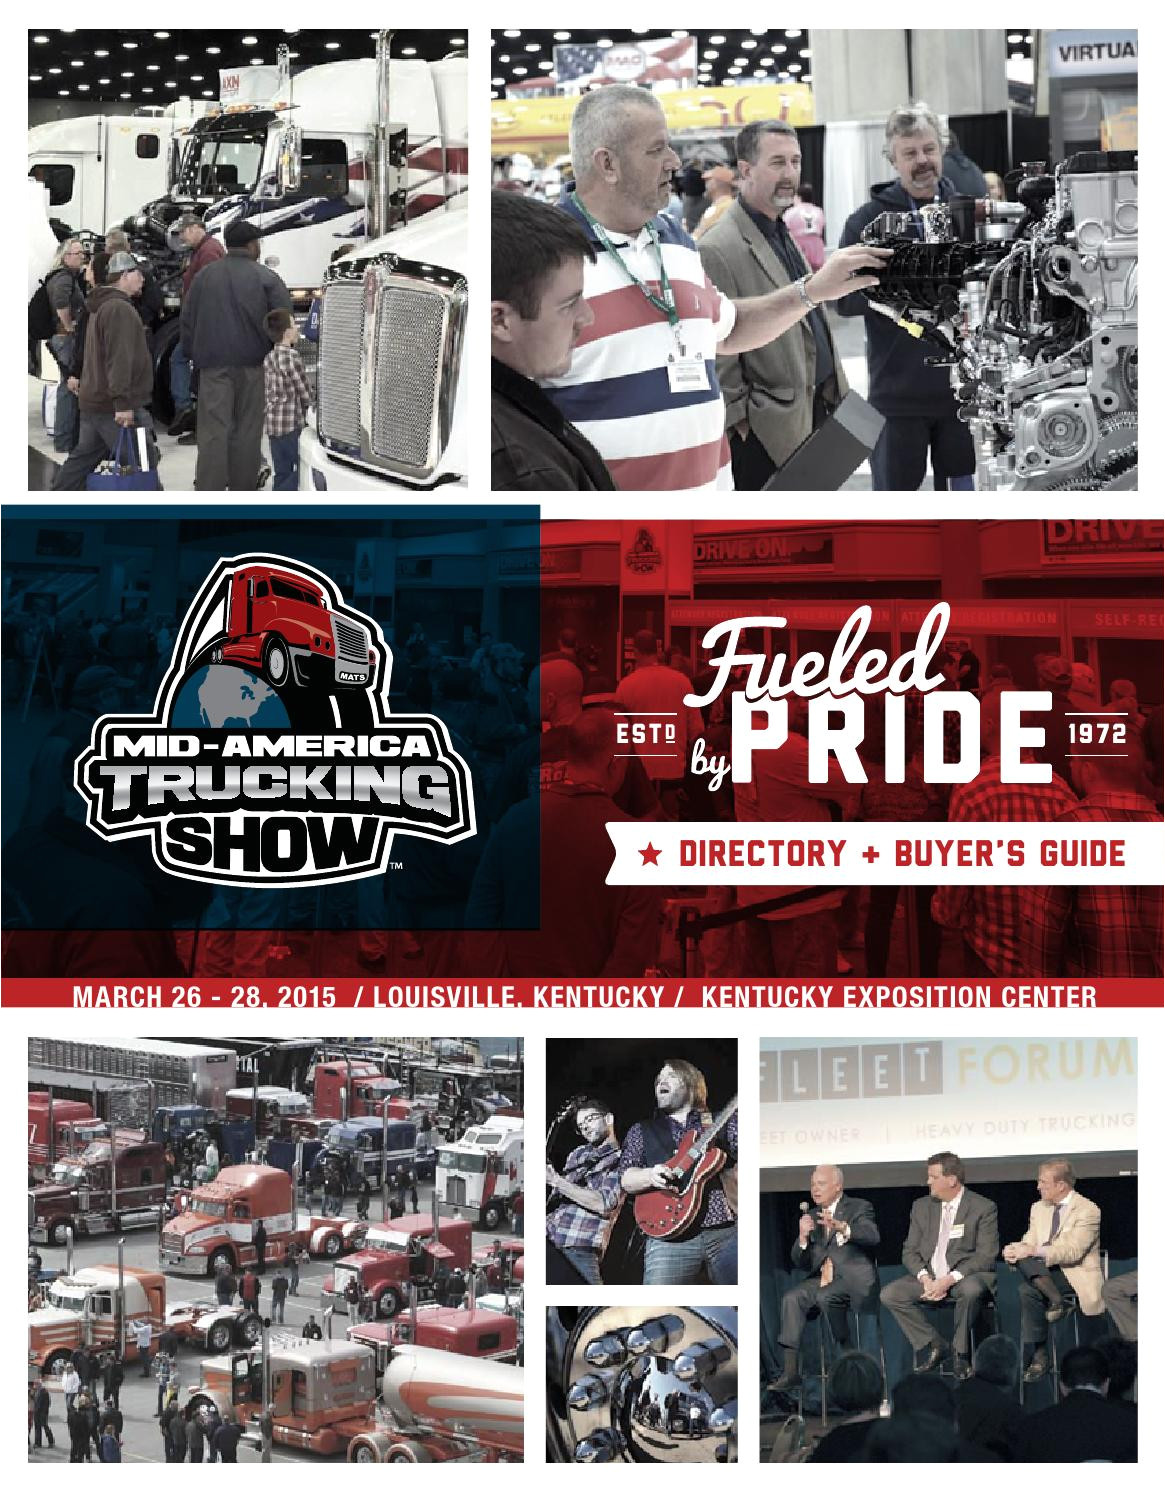 2015 mid america trucking show directory buyer s by mid america trucking show issuu